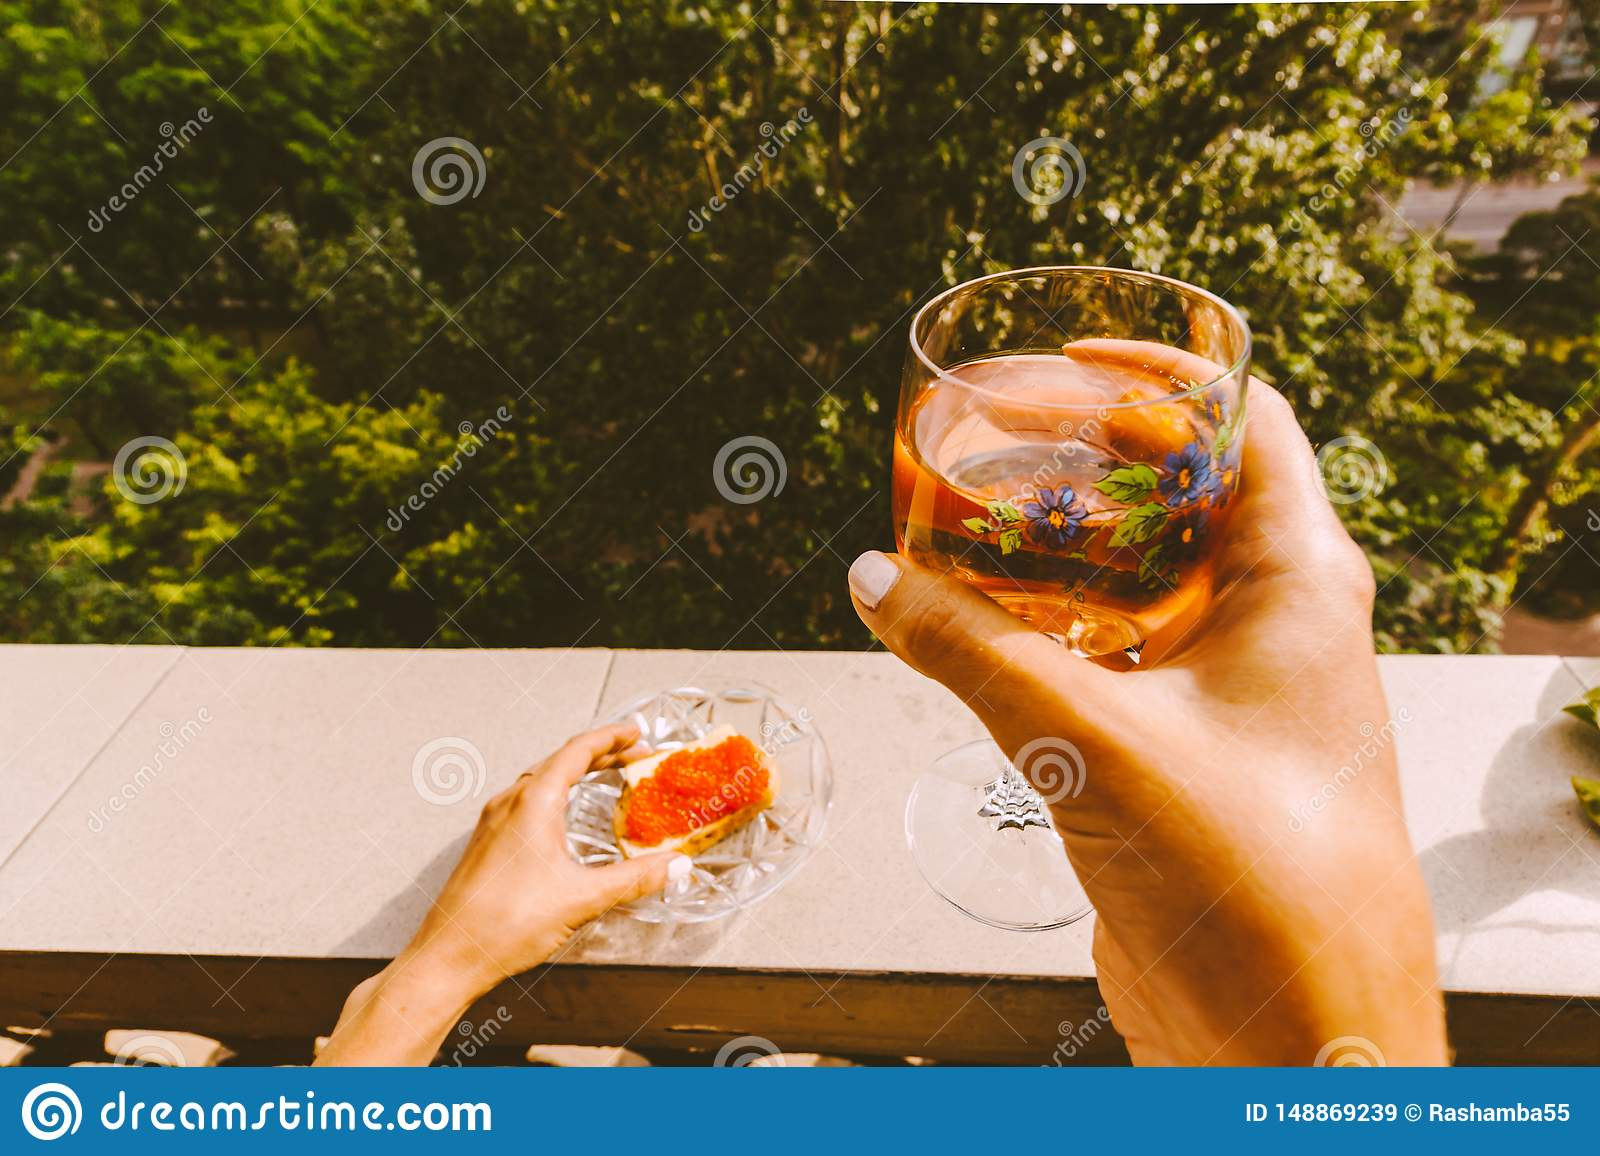 female hands holding a glass of wine